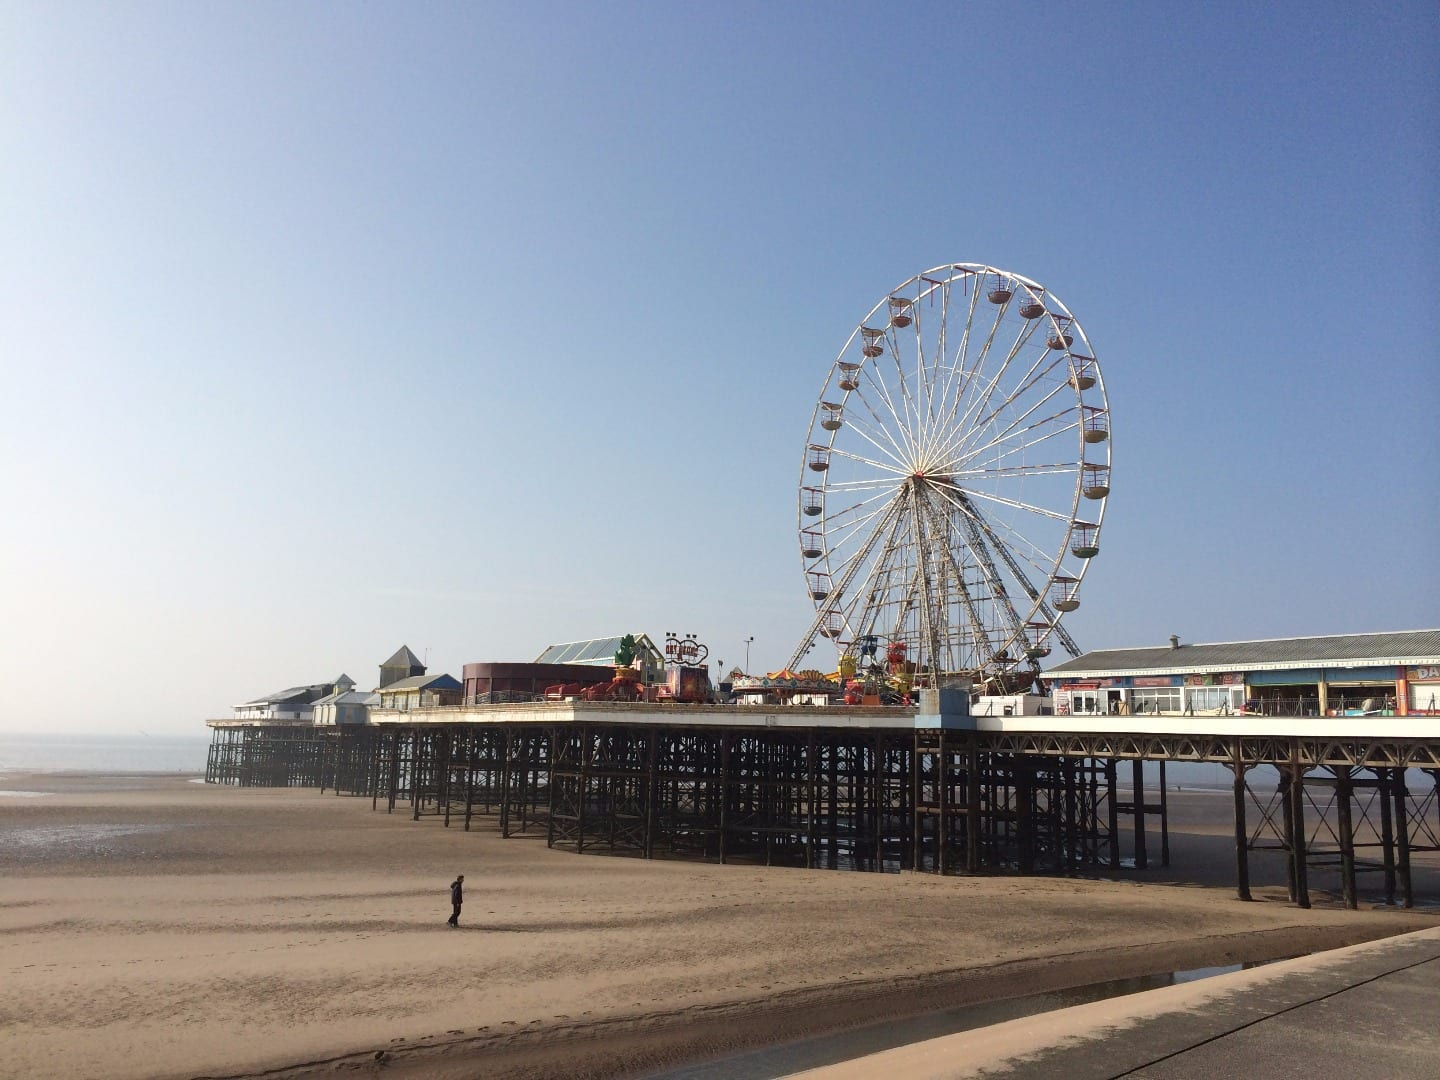 Blackpool Central Pier and big wheel. Protecting Blackpool's Piers